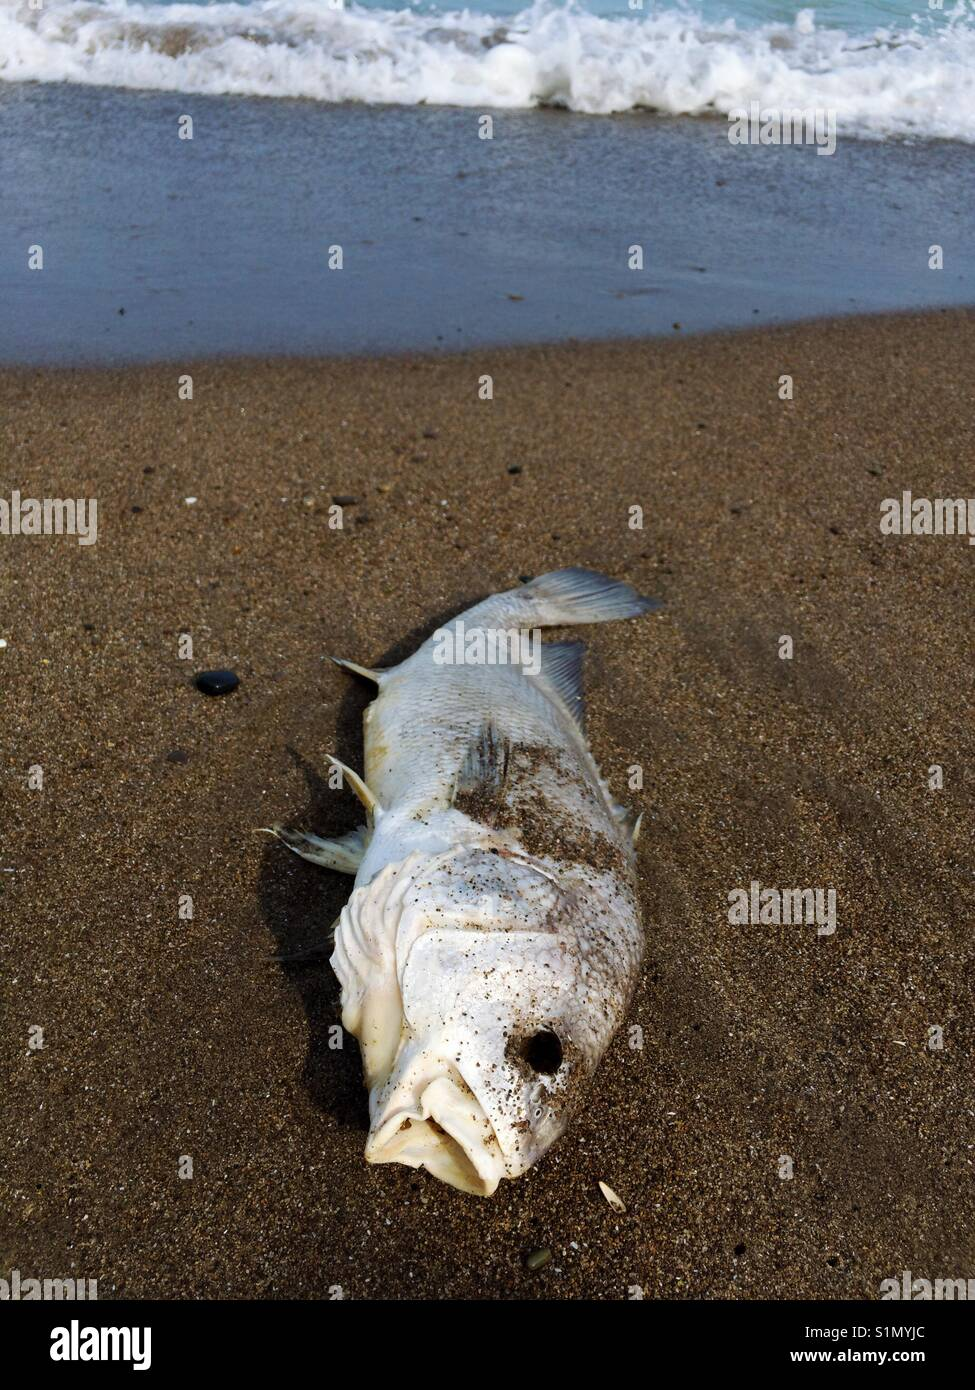 Dead fish along the shore stock photo royalty free image dead fish along the shore publicscrutiny Image collections